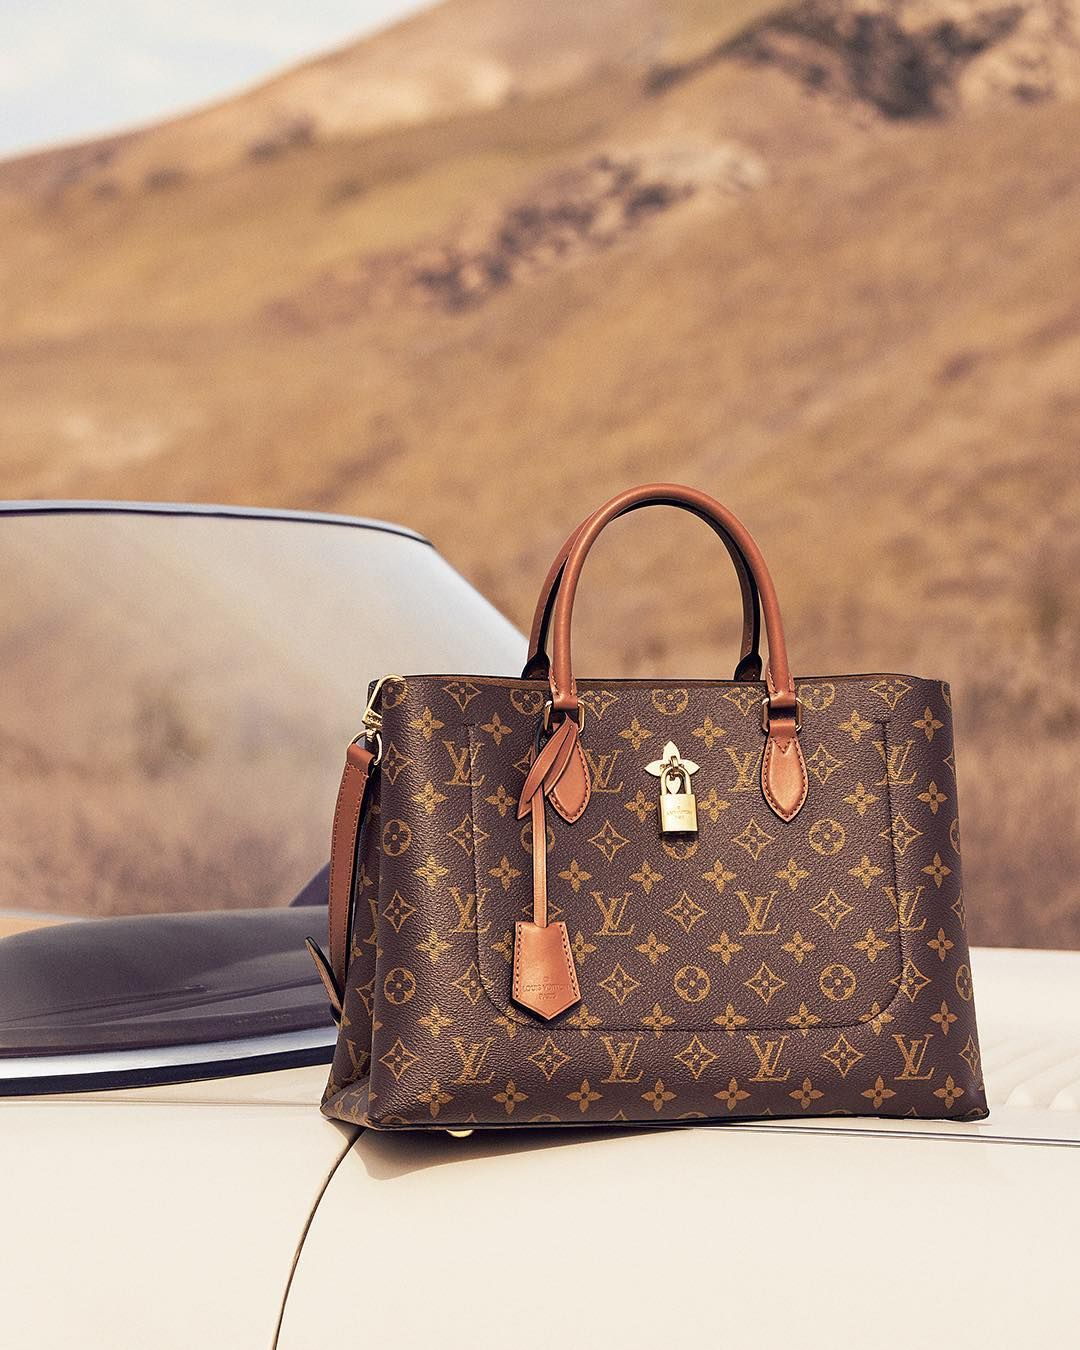 Travel Light Travel Fast Discover The Louisvuitton Flower Tote